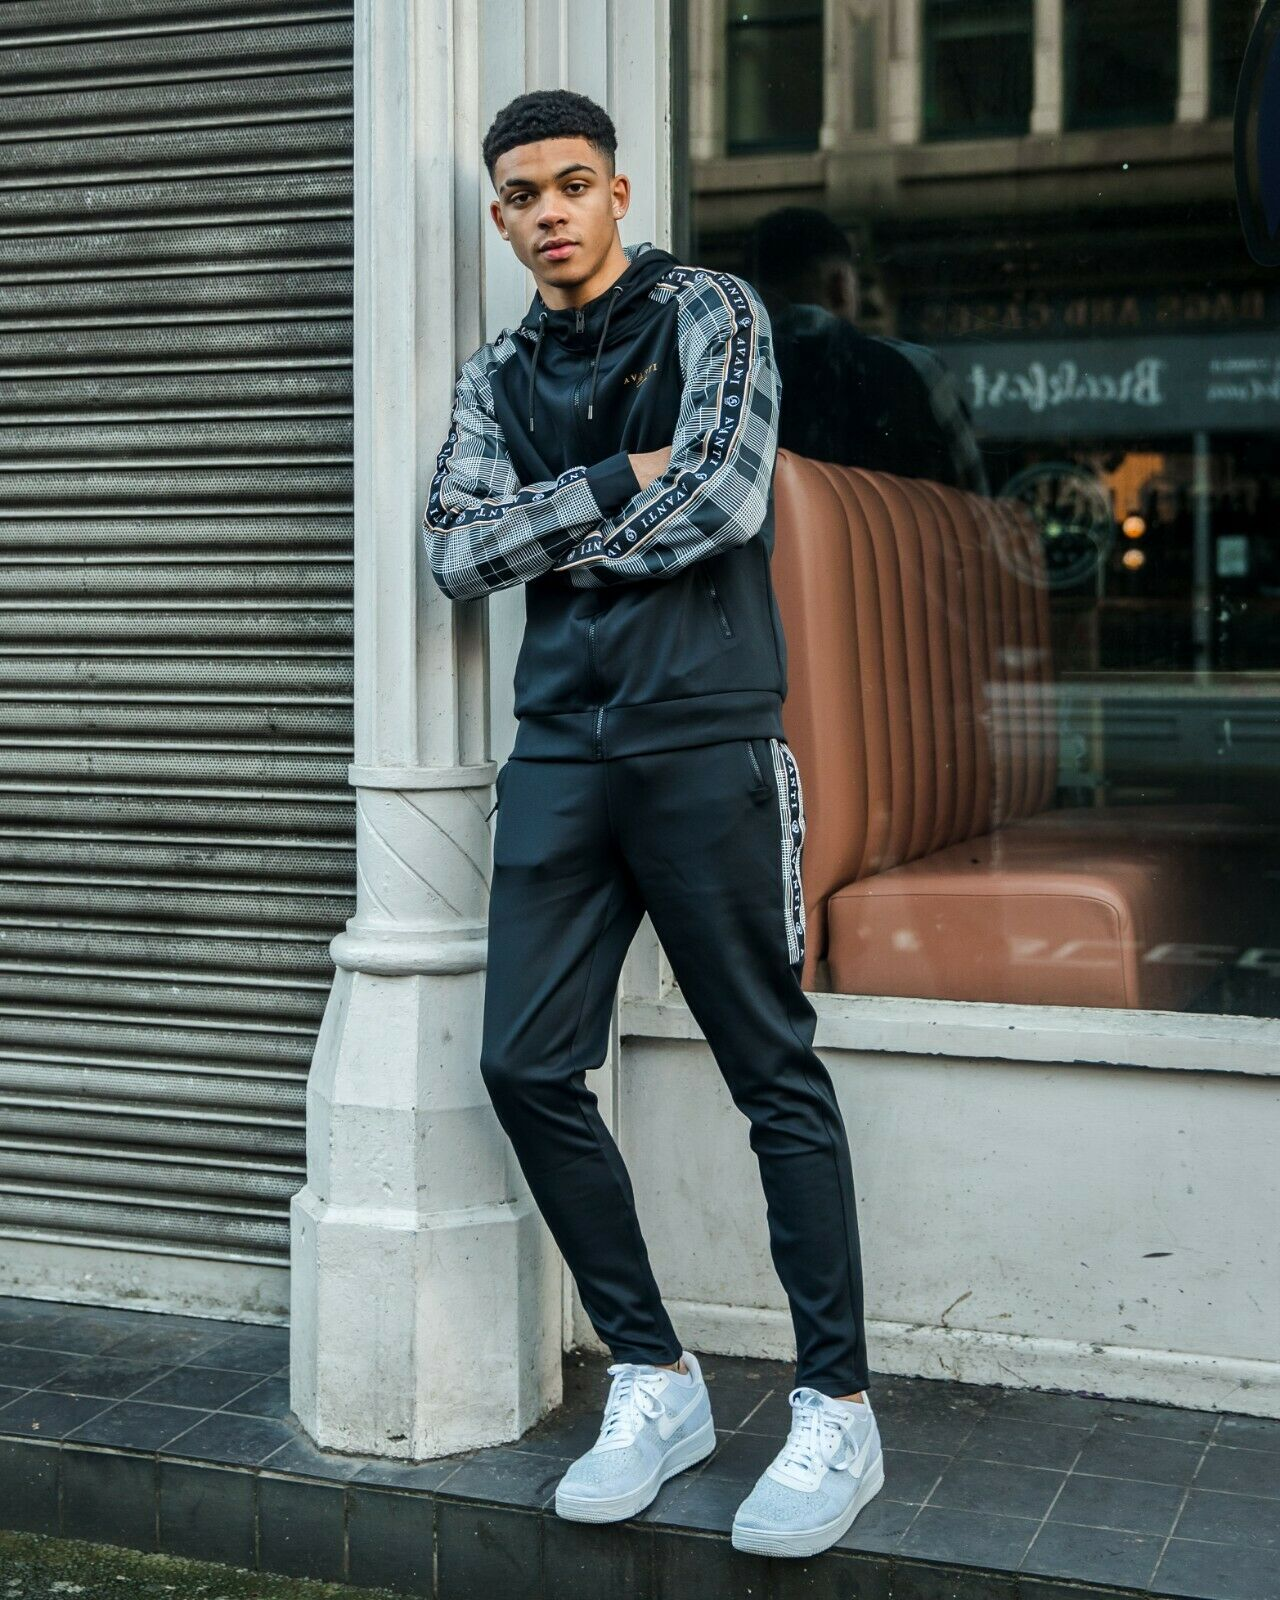 AC Men's Full Tracksuit (Hoodie & Bottoms) Street Check Men's Poly Tracksuit